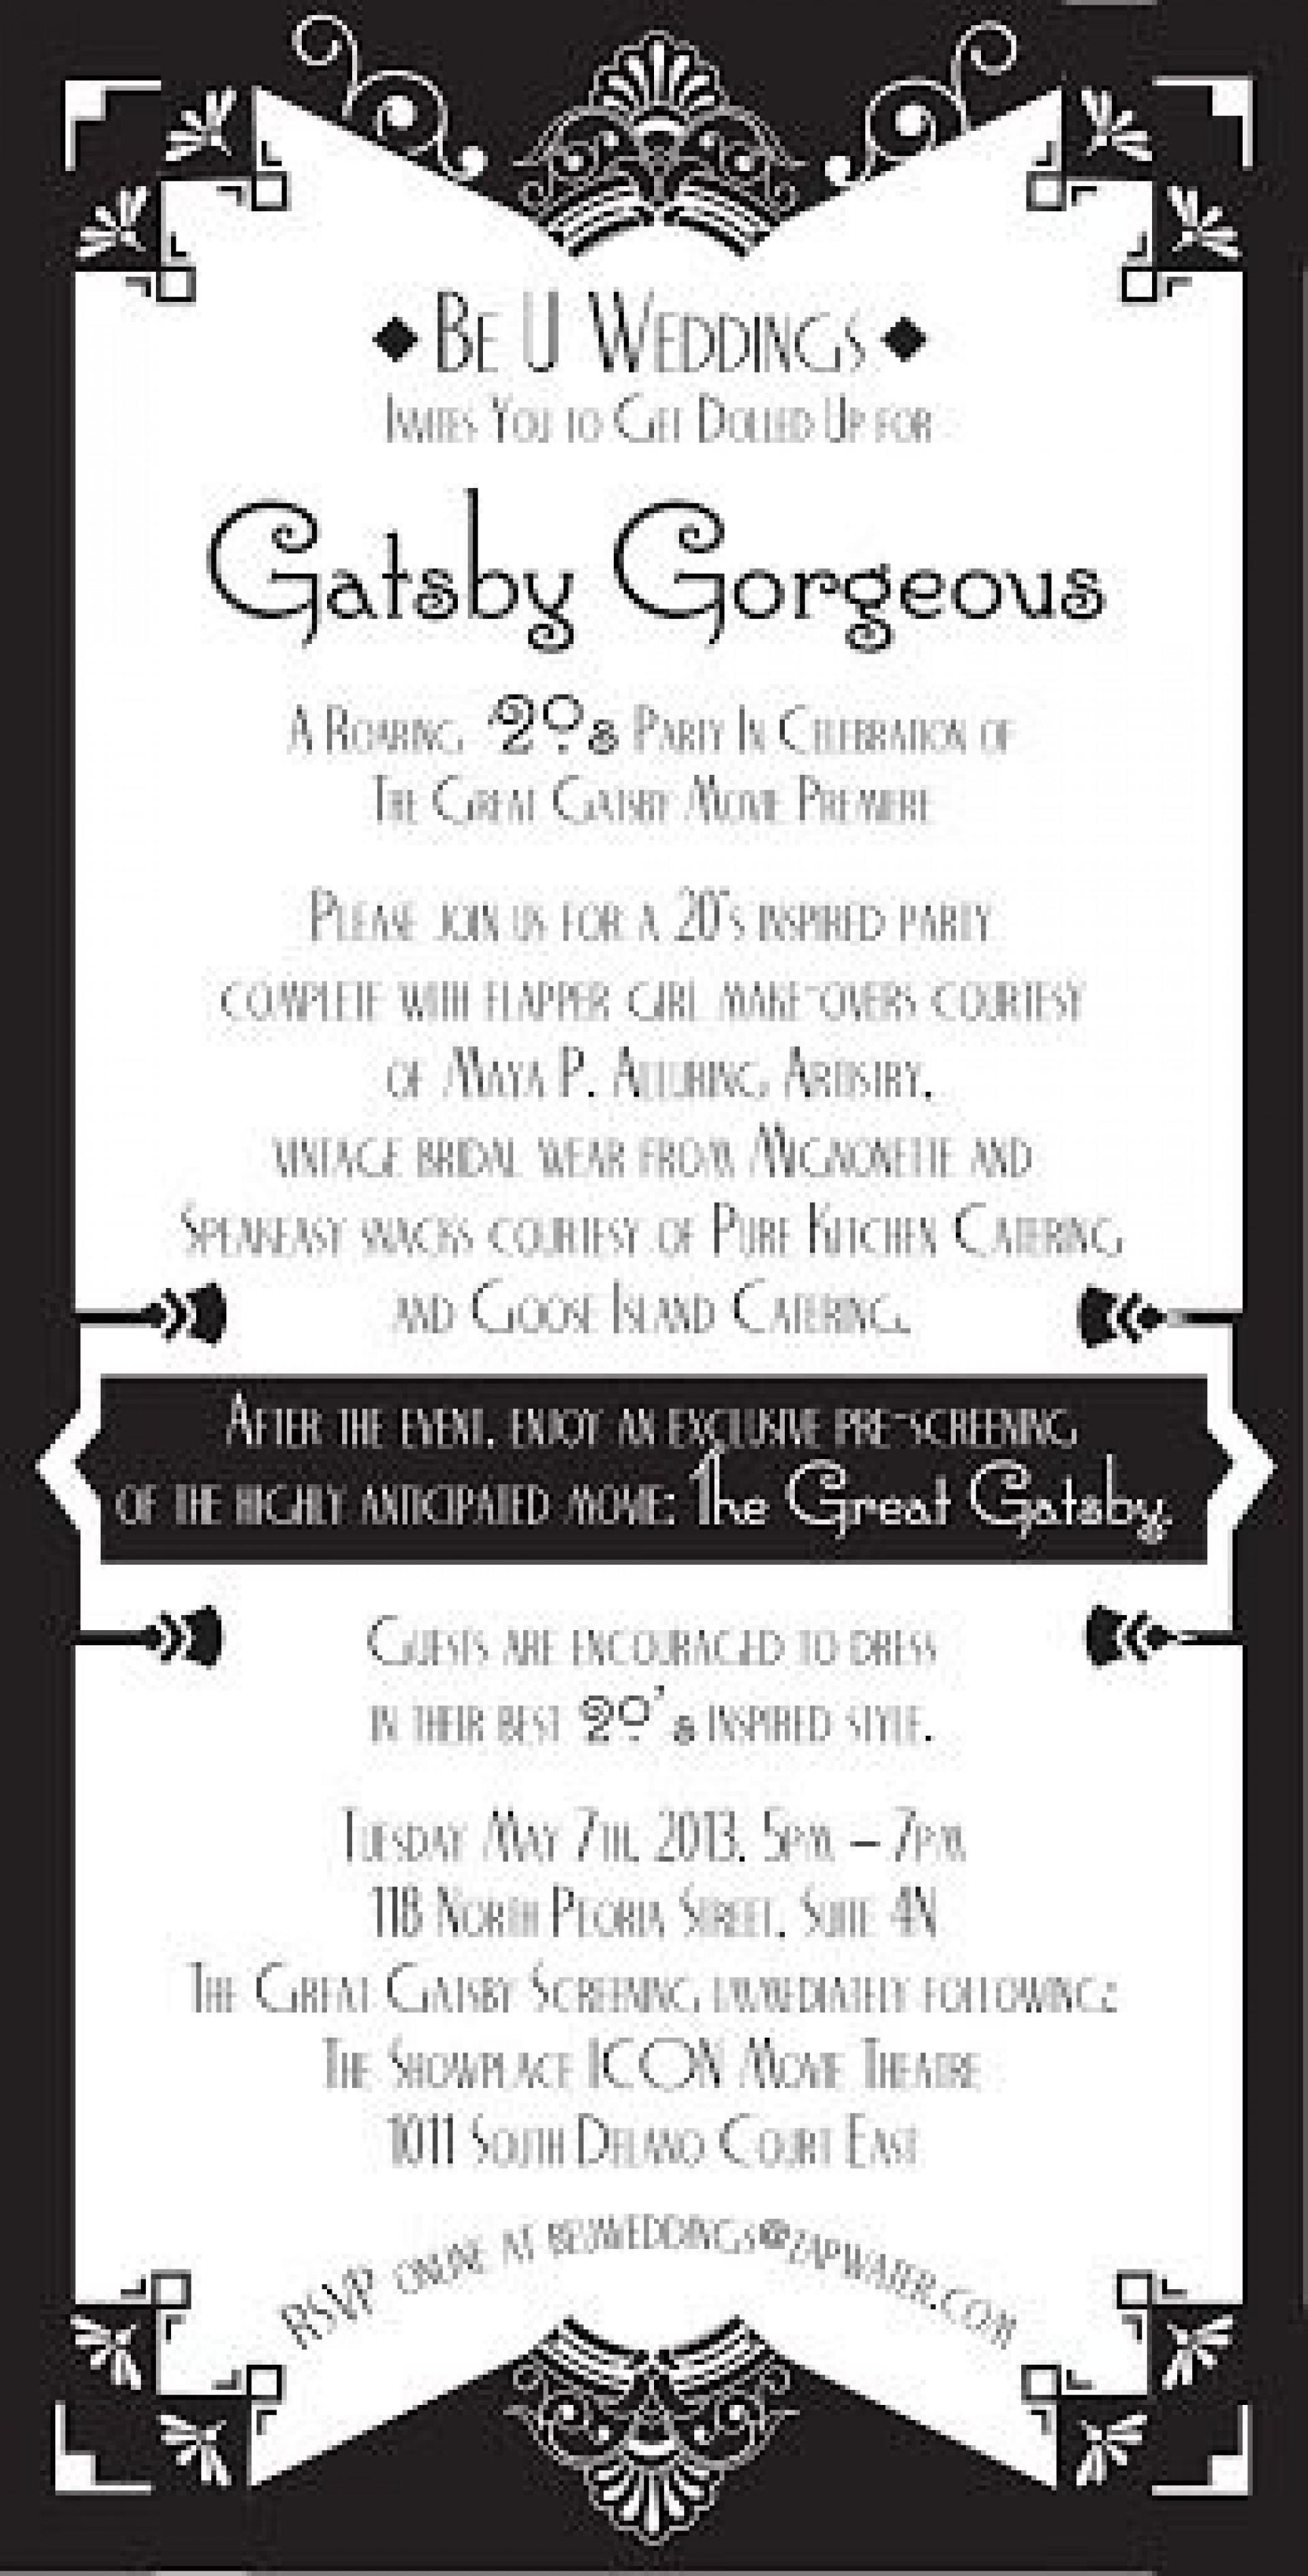 009 Imposing Great Gatsby Invitation Template Idea  Templates Free Download Blank1920